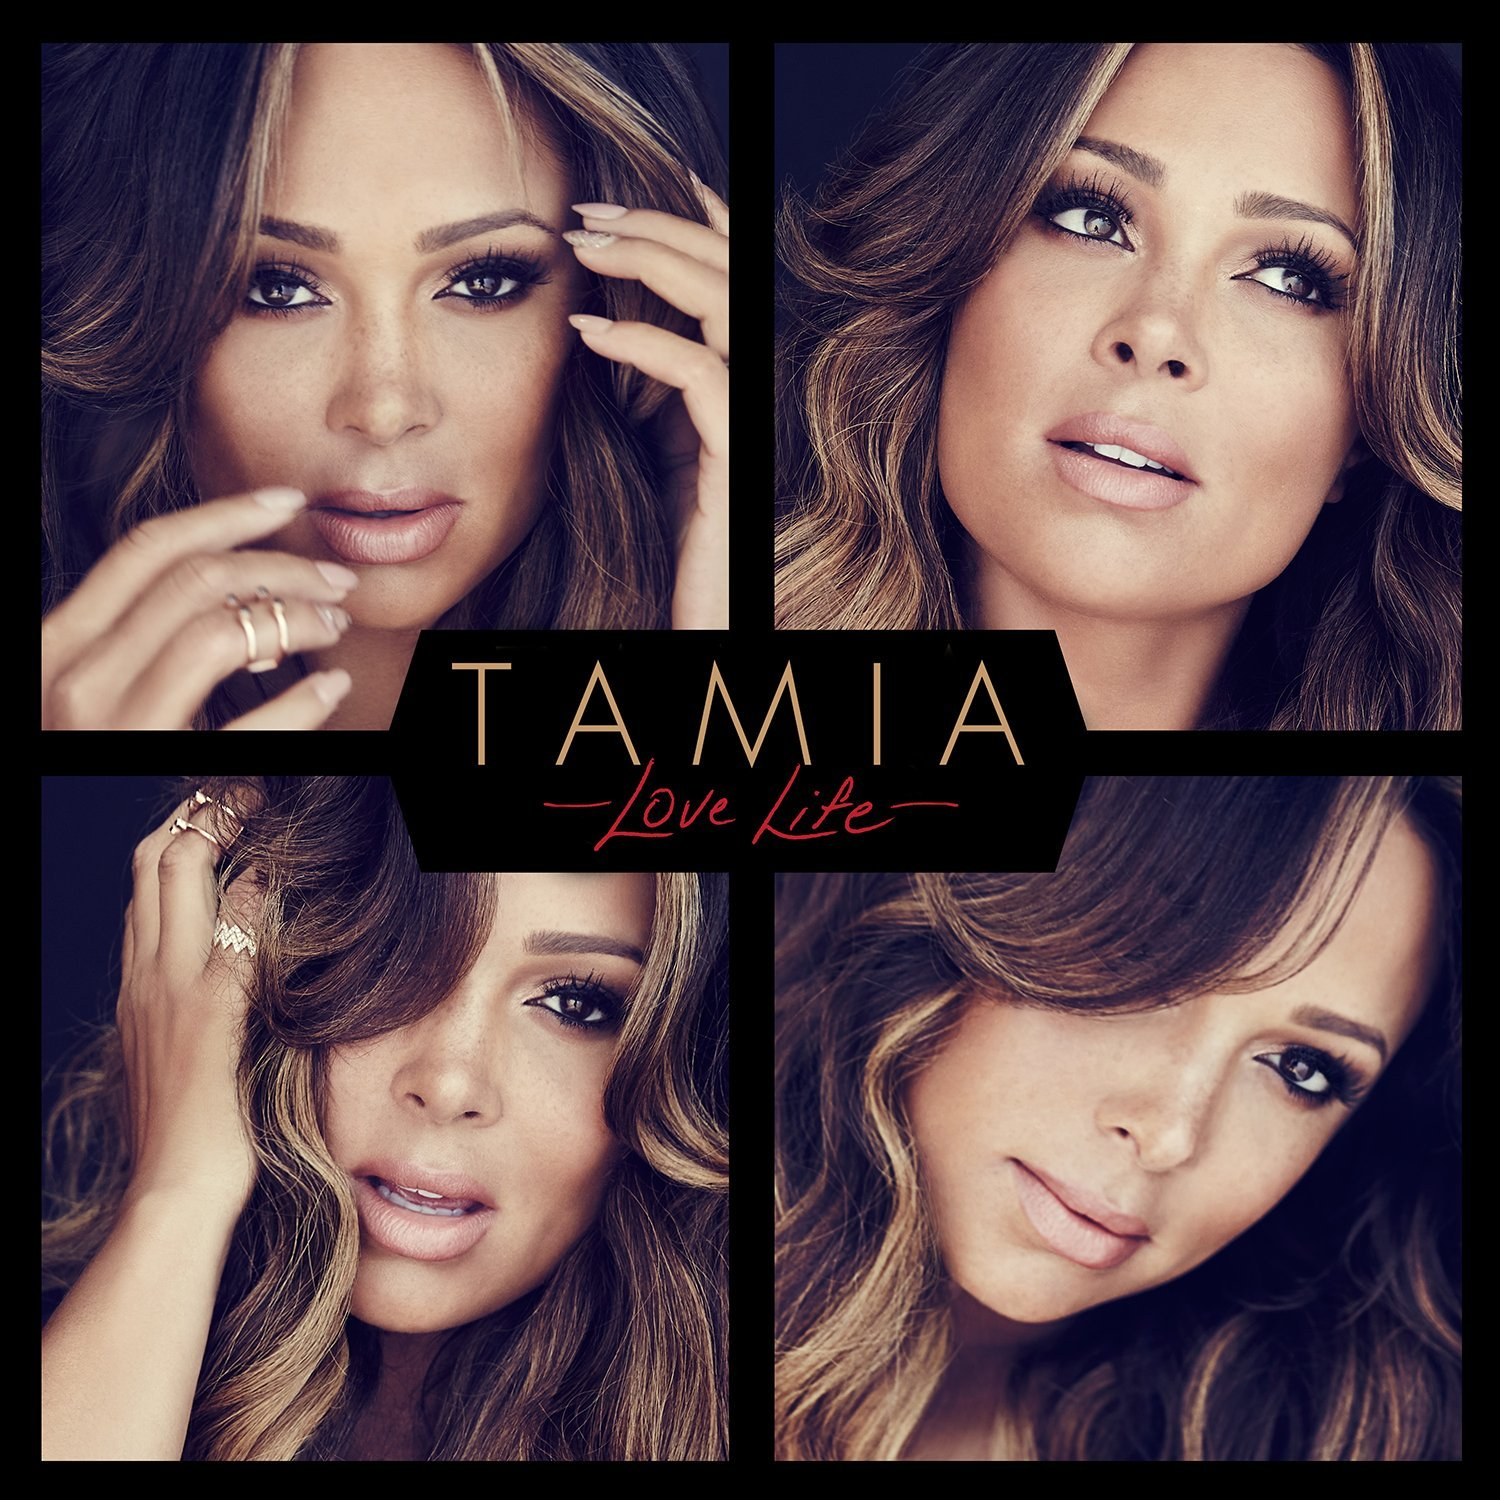 Tamia Sounds Incredibly Classy On 'Love Life'